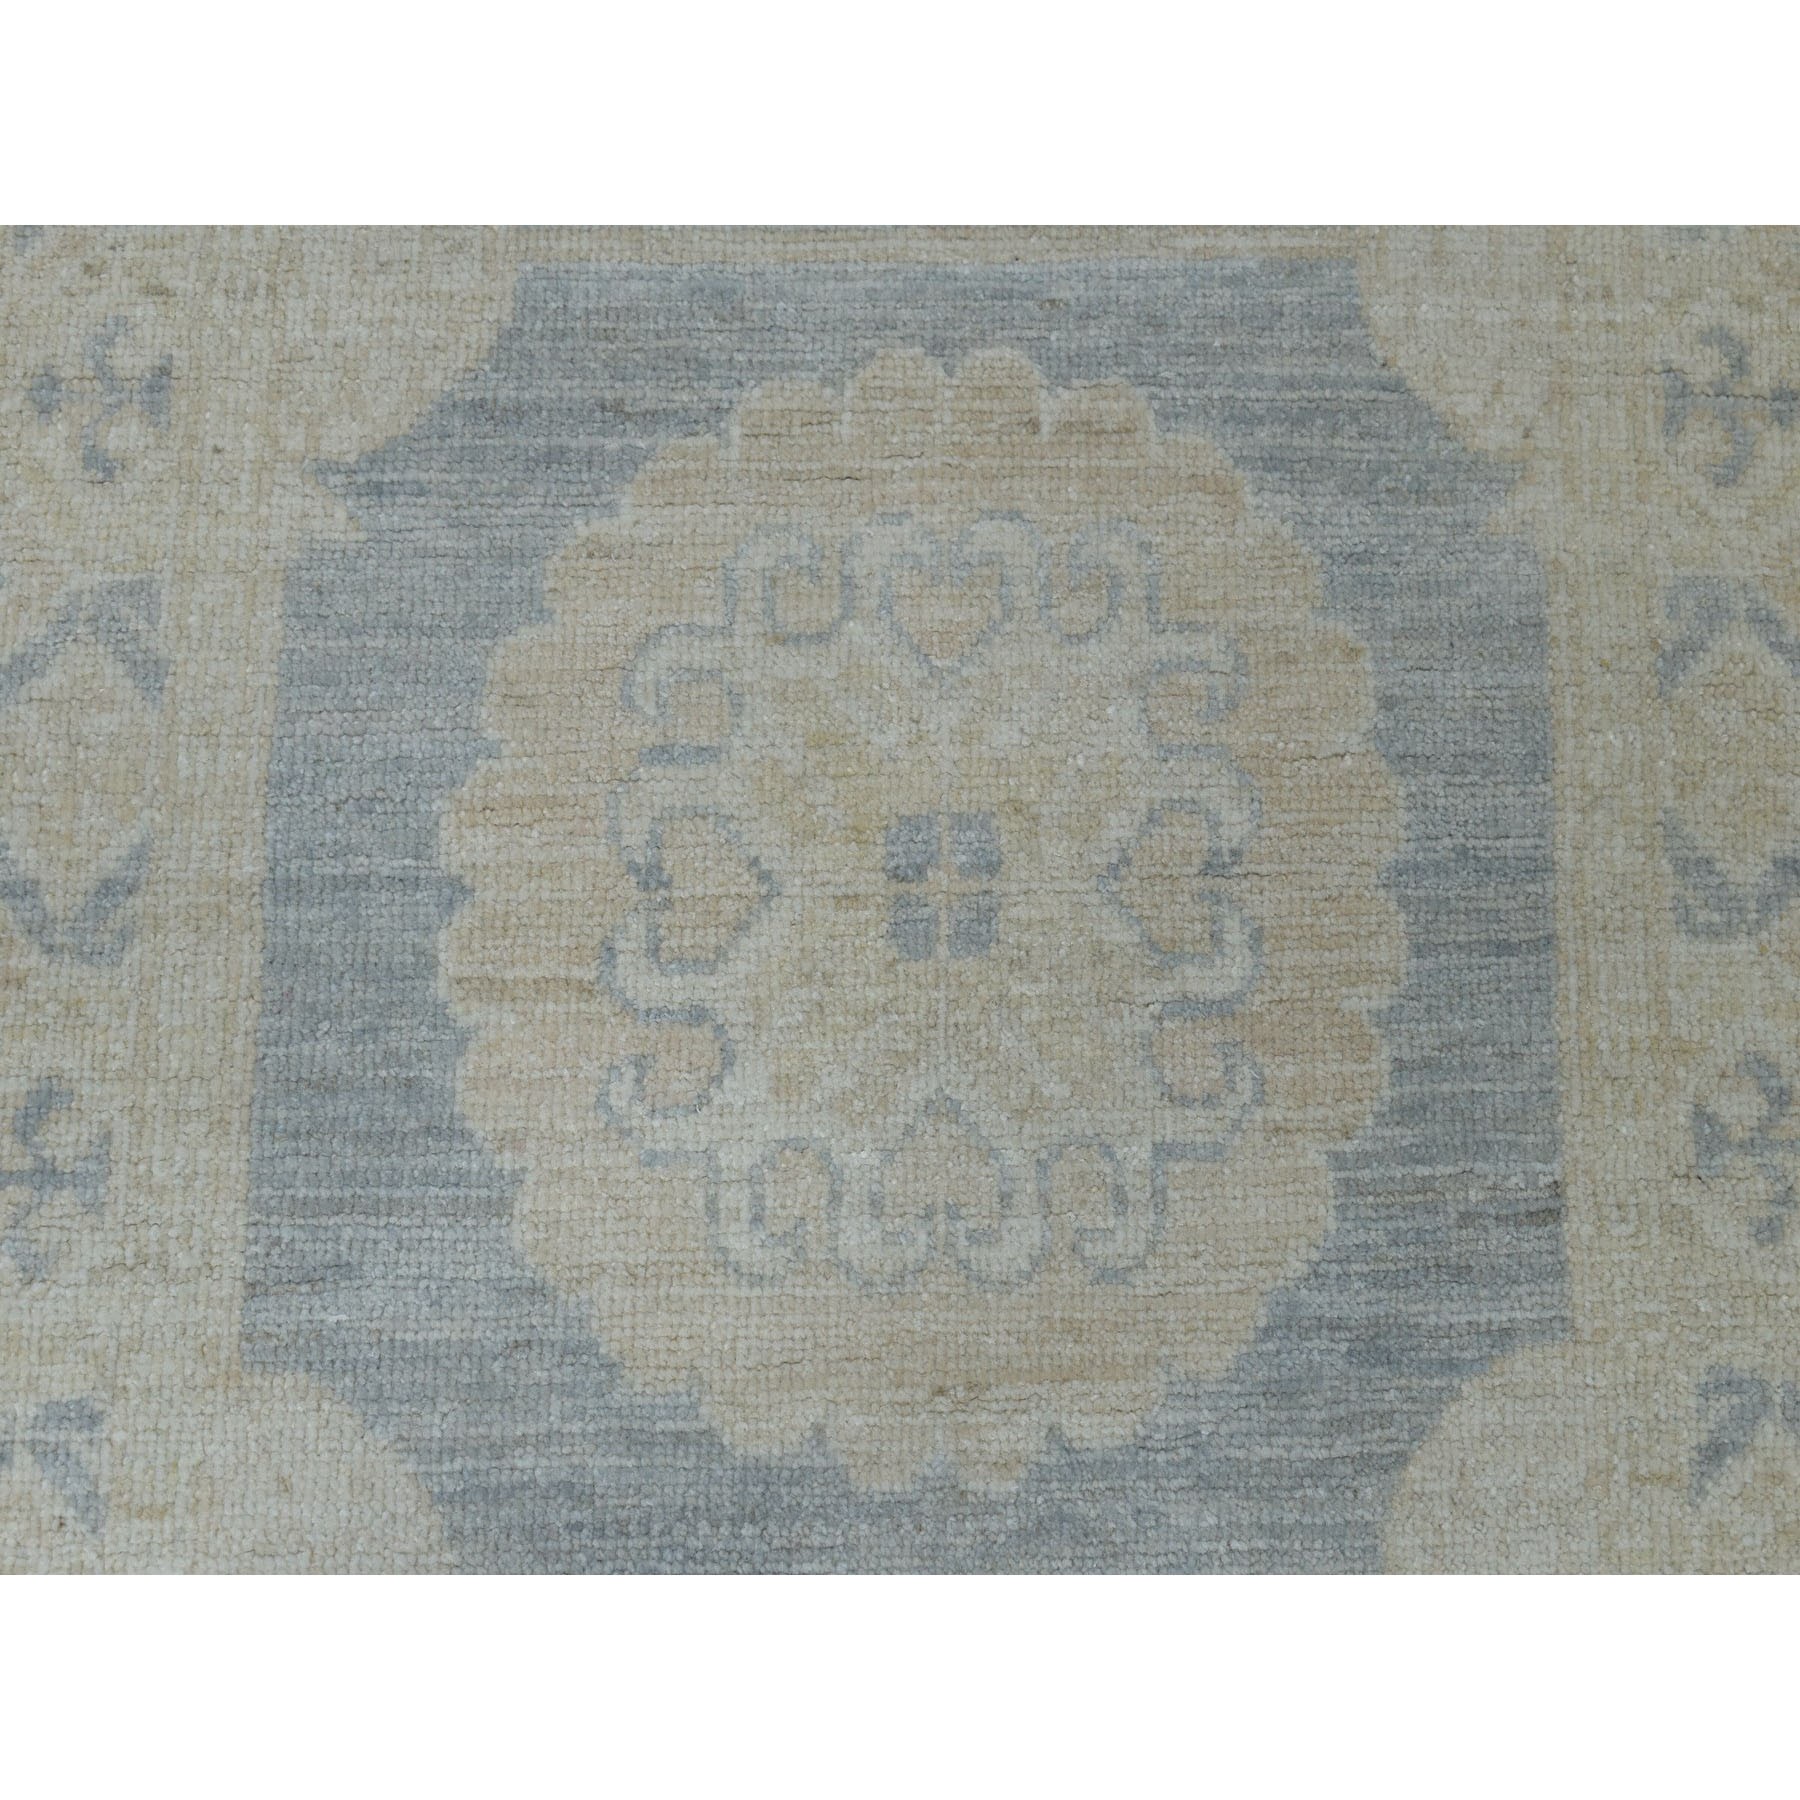 Oushak-And-Peshawar-Hand-Knotted-Rug-255480